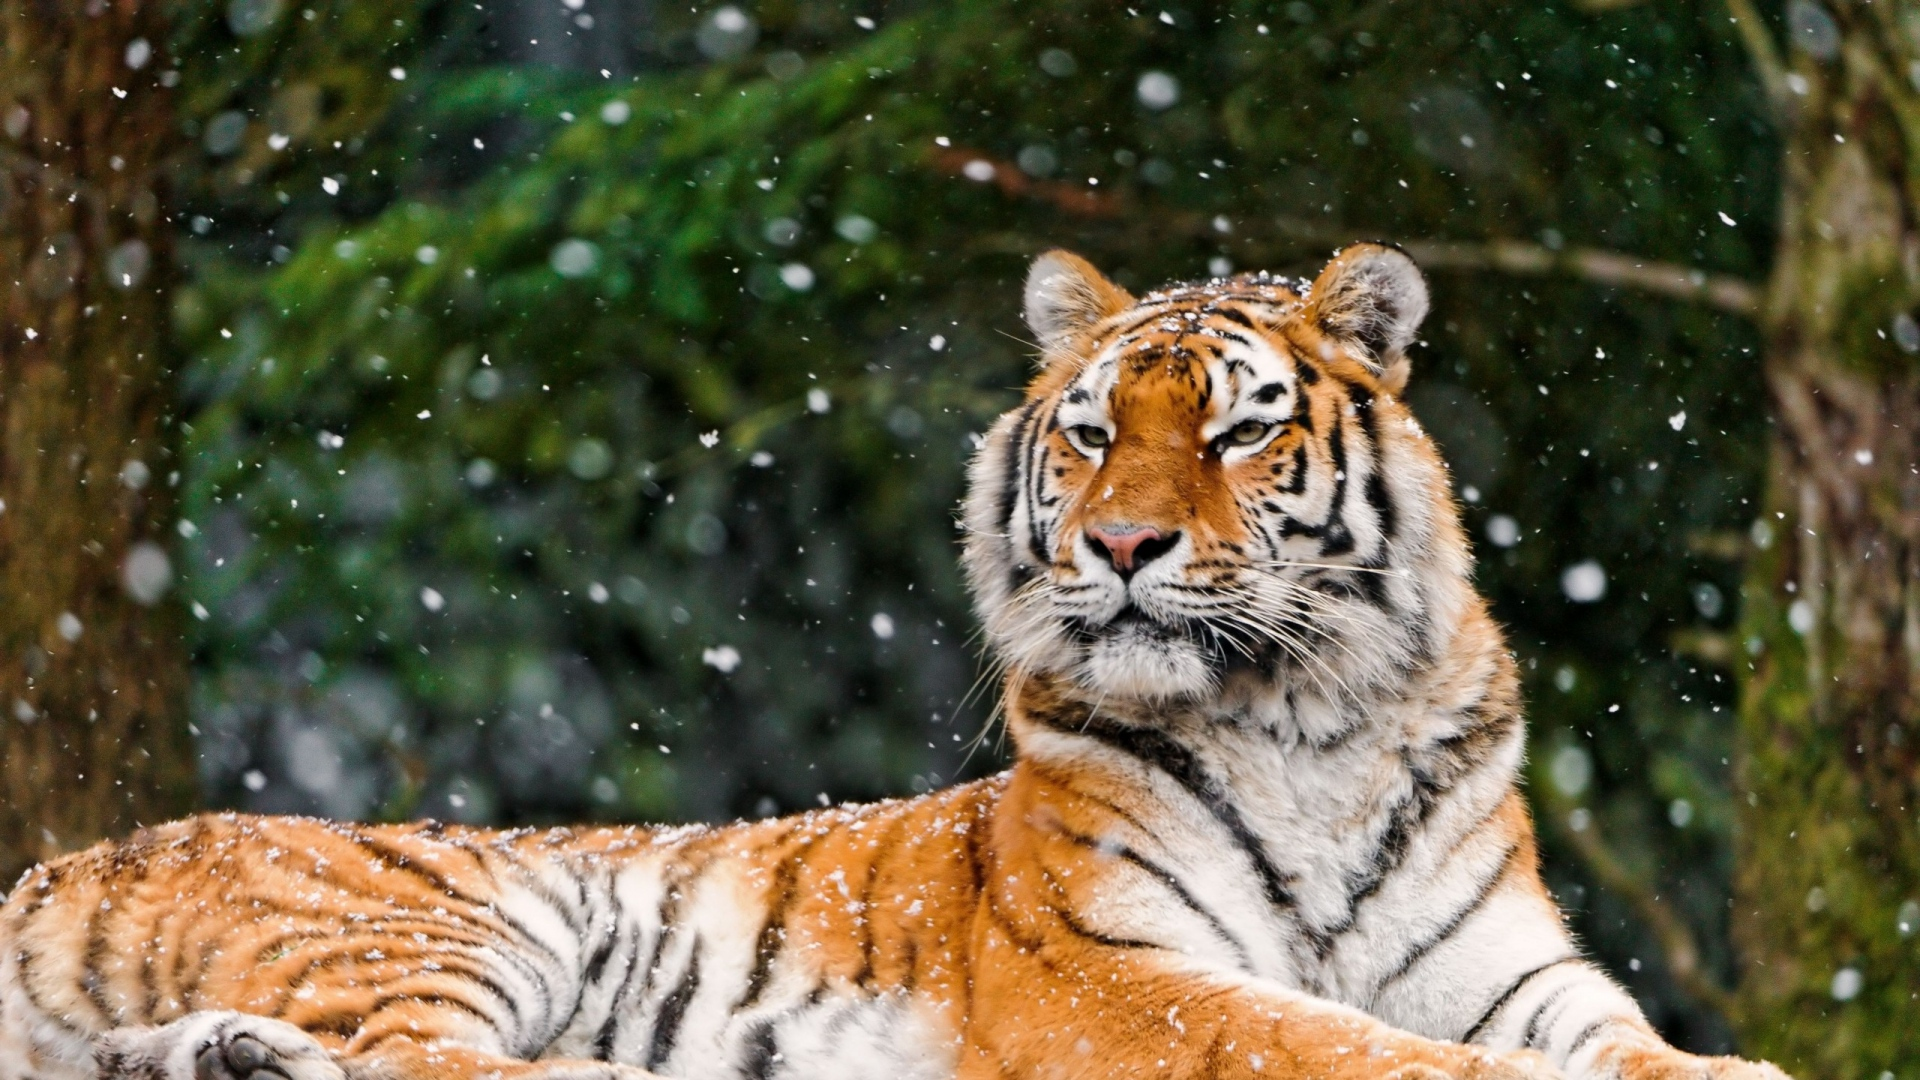 Most Inspiring Wallpaper Mac Tiger - tiger_predator_lying_snow_91748_1920x1080  Picture_257659.jpg